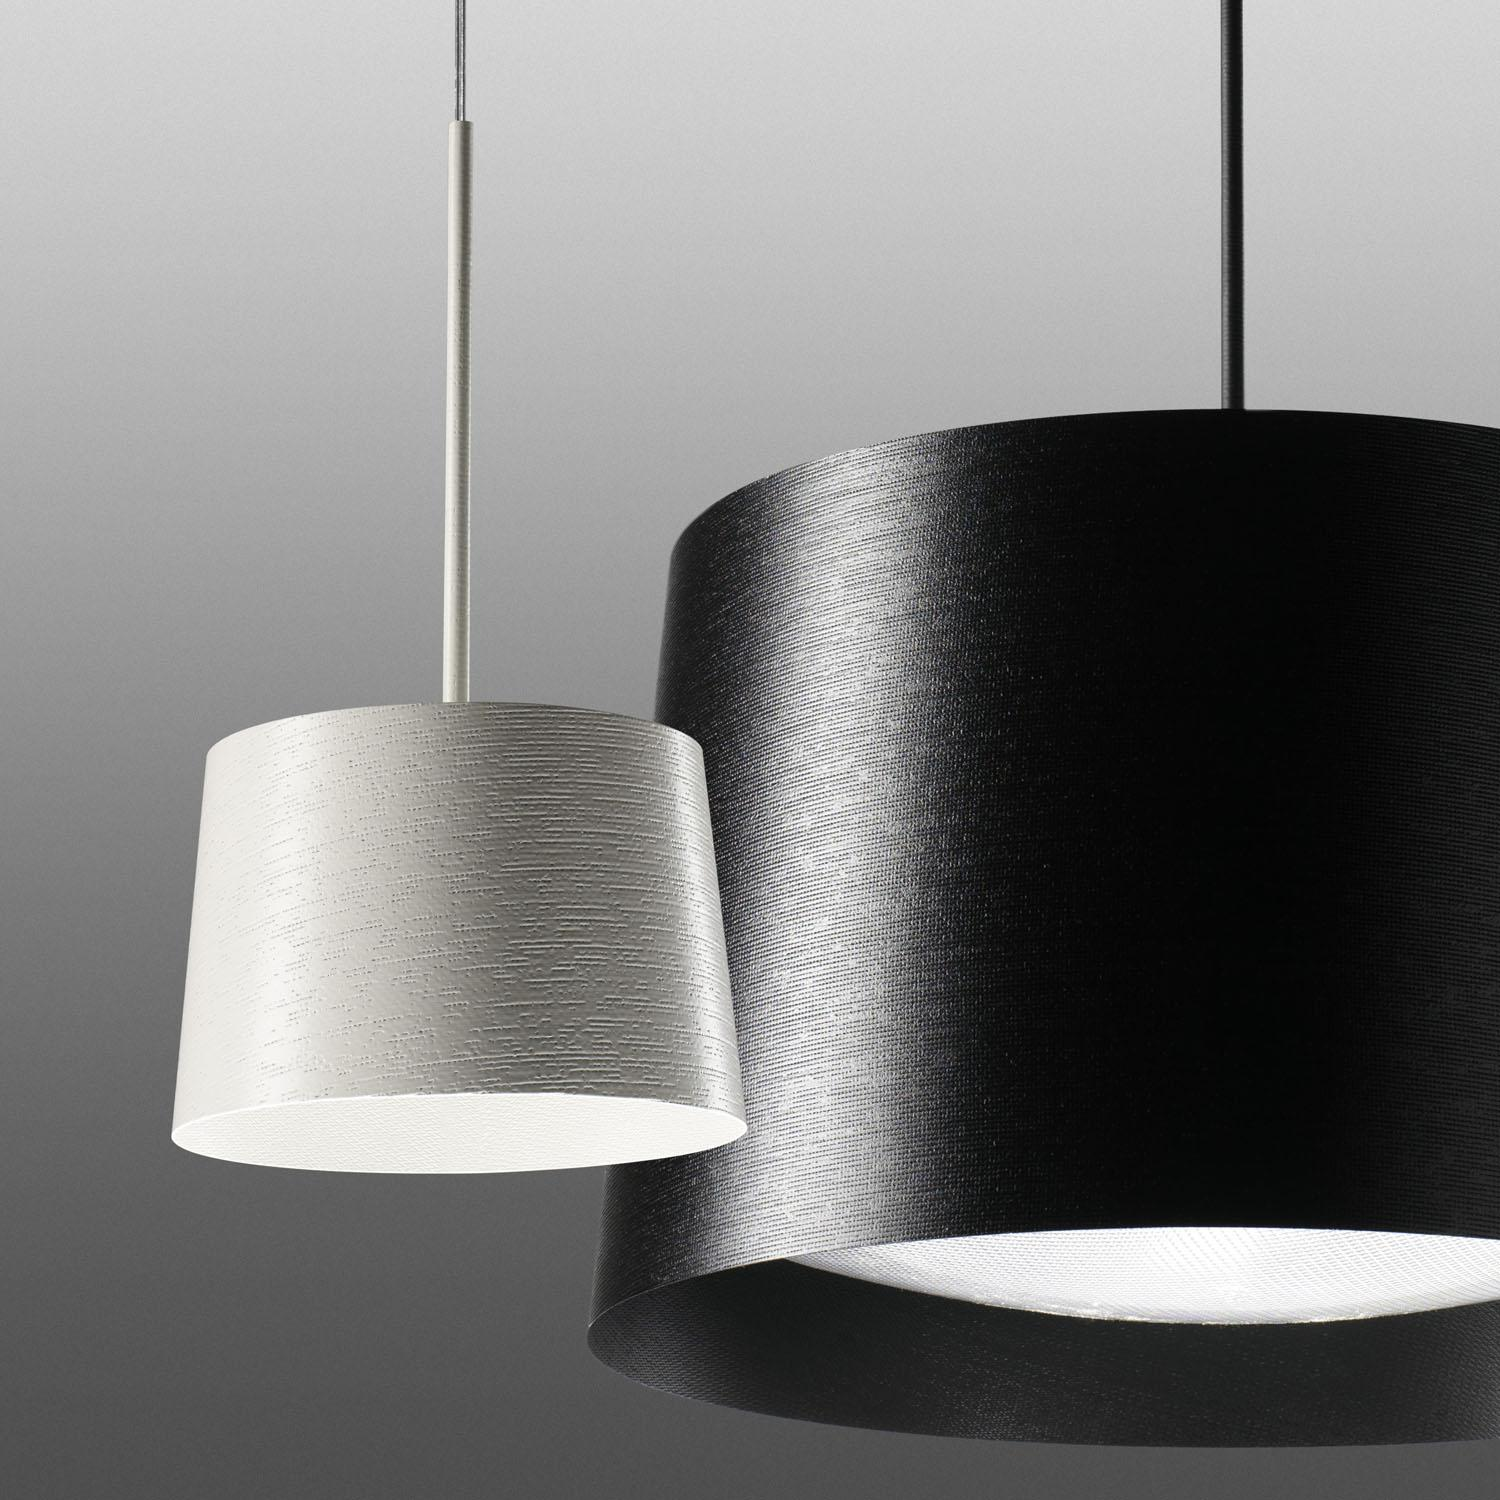 foscarini twiggy pendelleuchte g nstig kaufen. Black Bedroom Furniture Sets. Home Design Ideas